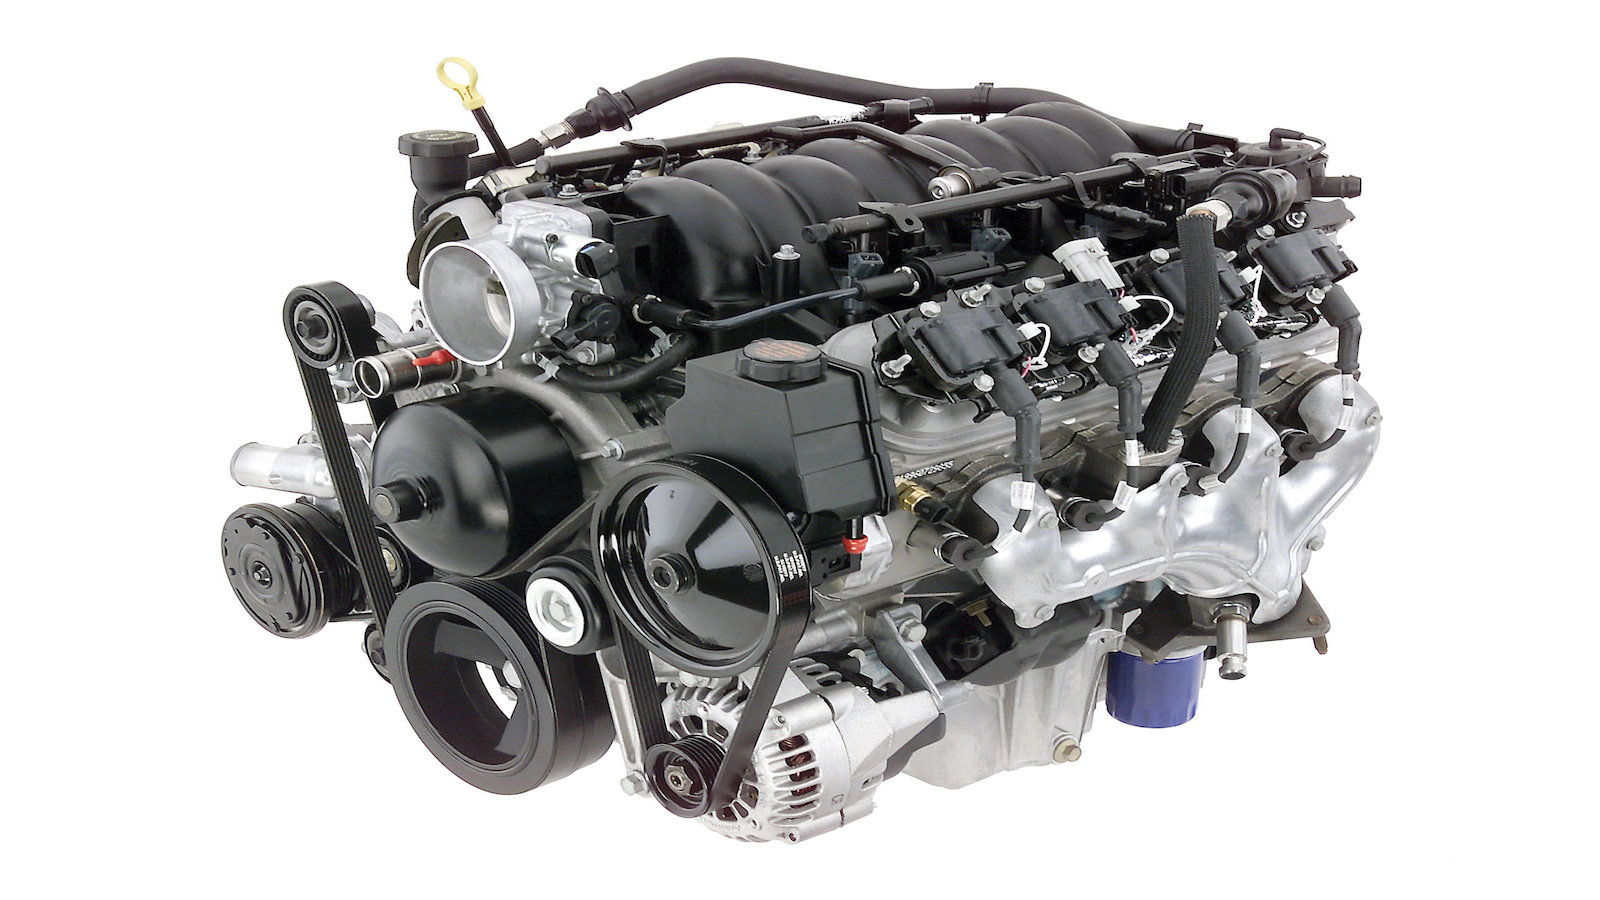 Choosing the right engine